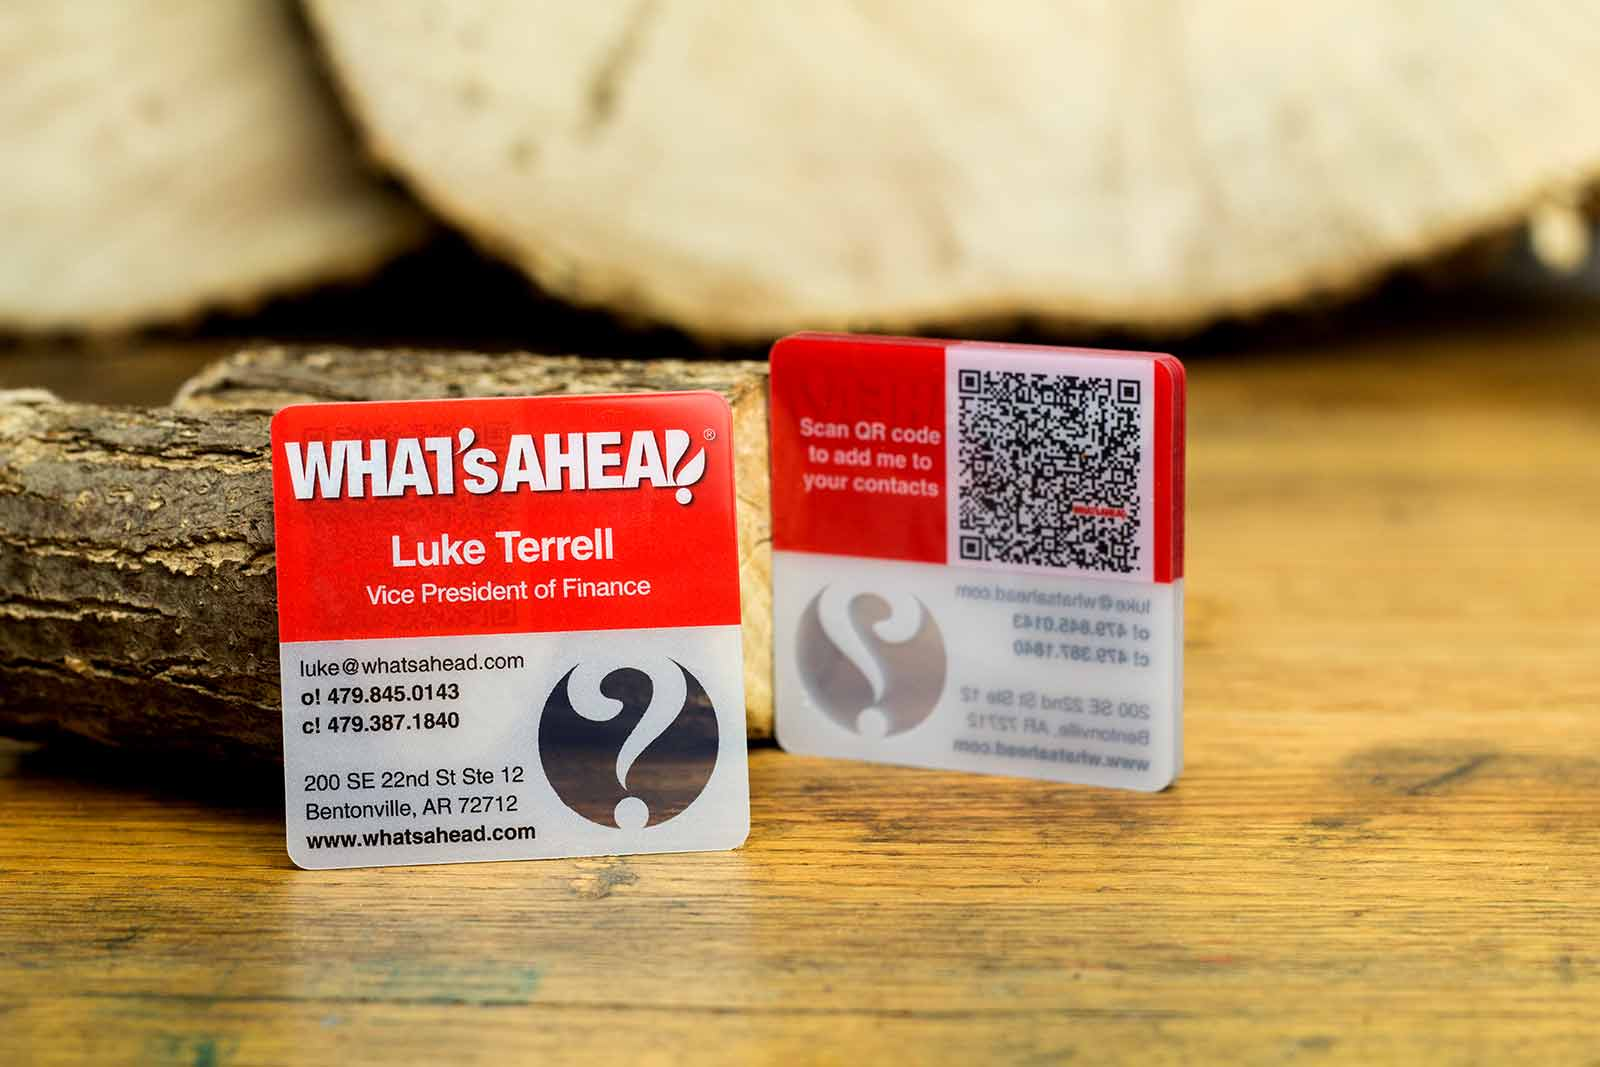 Square business cards are perfect to market your business qr code business cards reheart Gallery